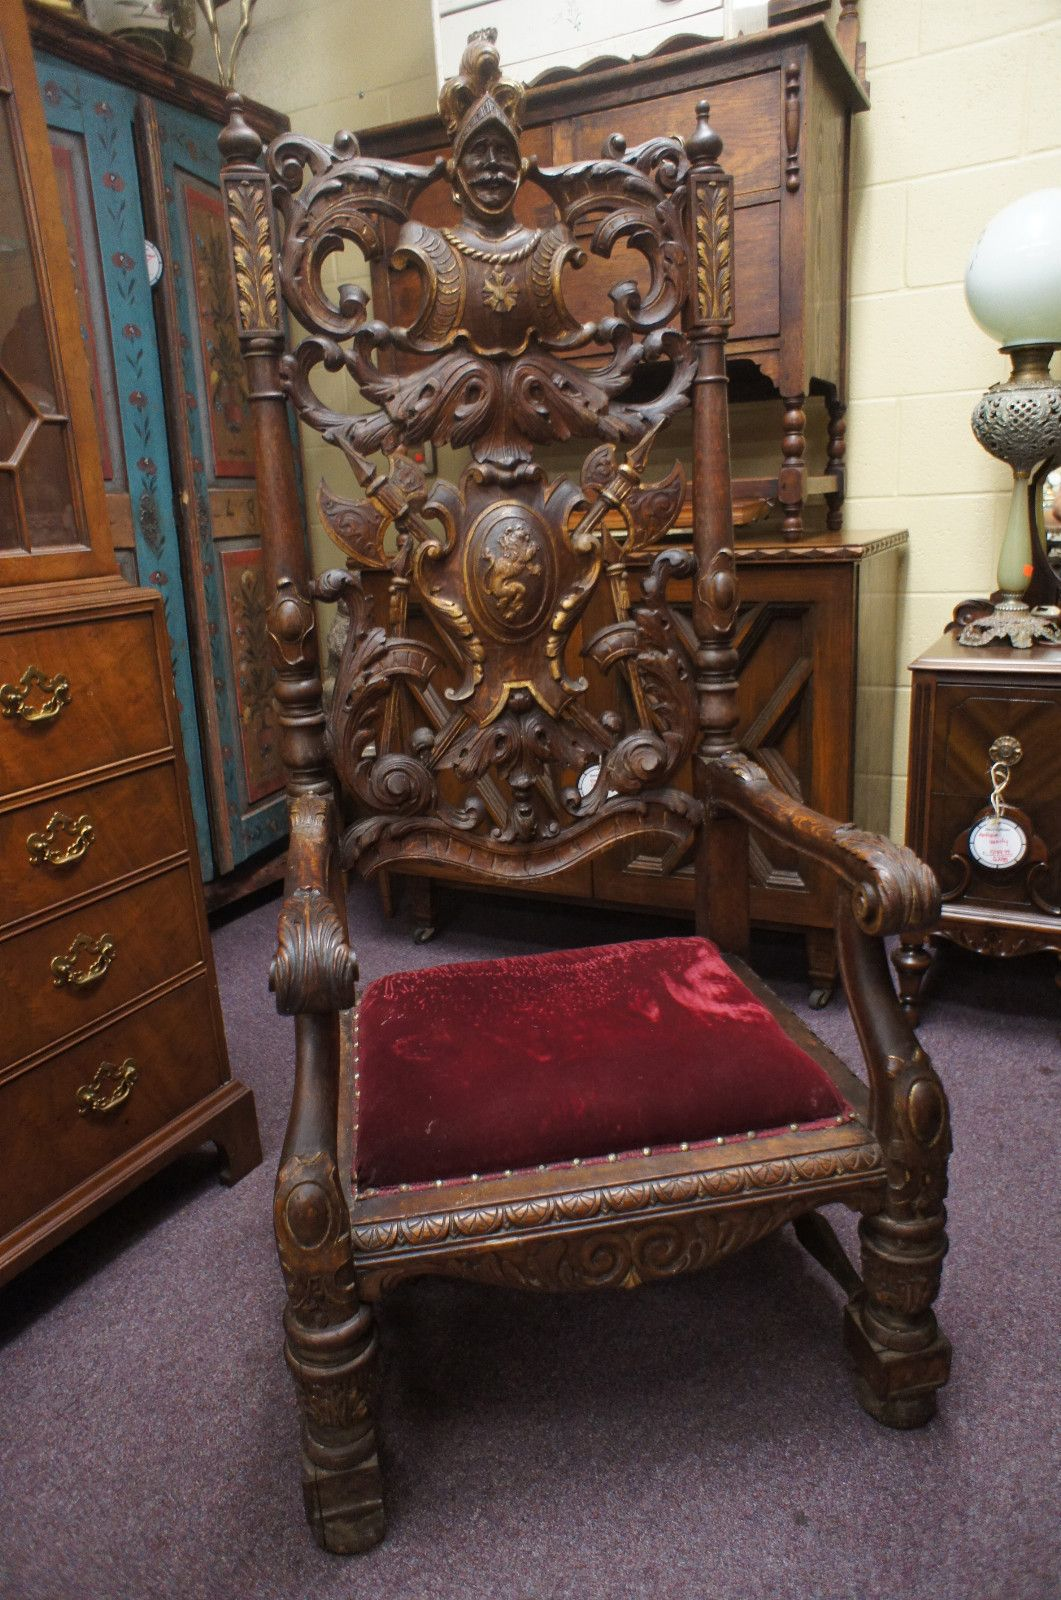 Antique Spanish Throne Chair Conquistador High Back Royal Velvet Seat Carved - Antique Spanish Throne Chair Conquistador High Back Royal Velvet